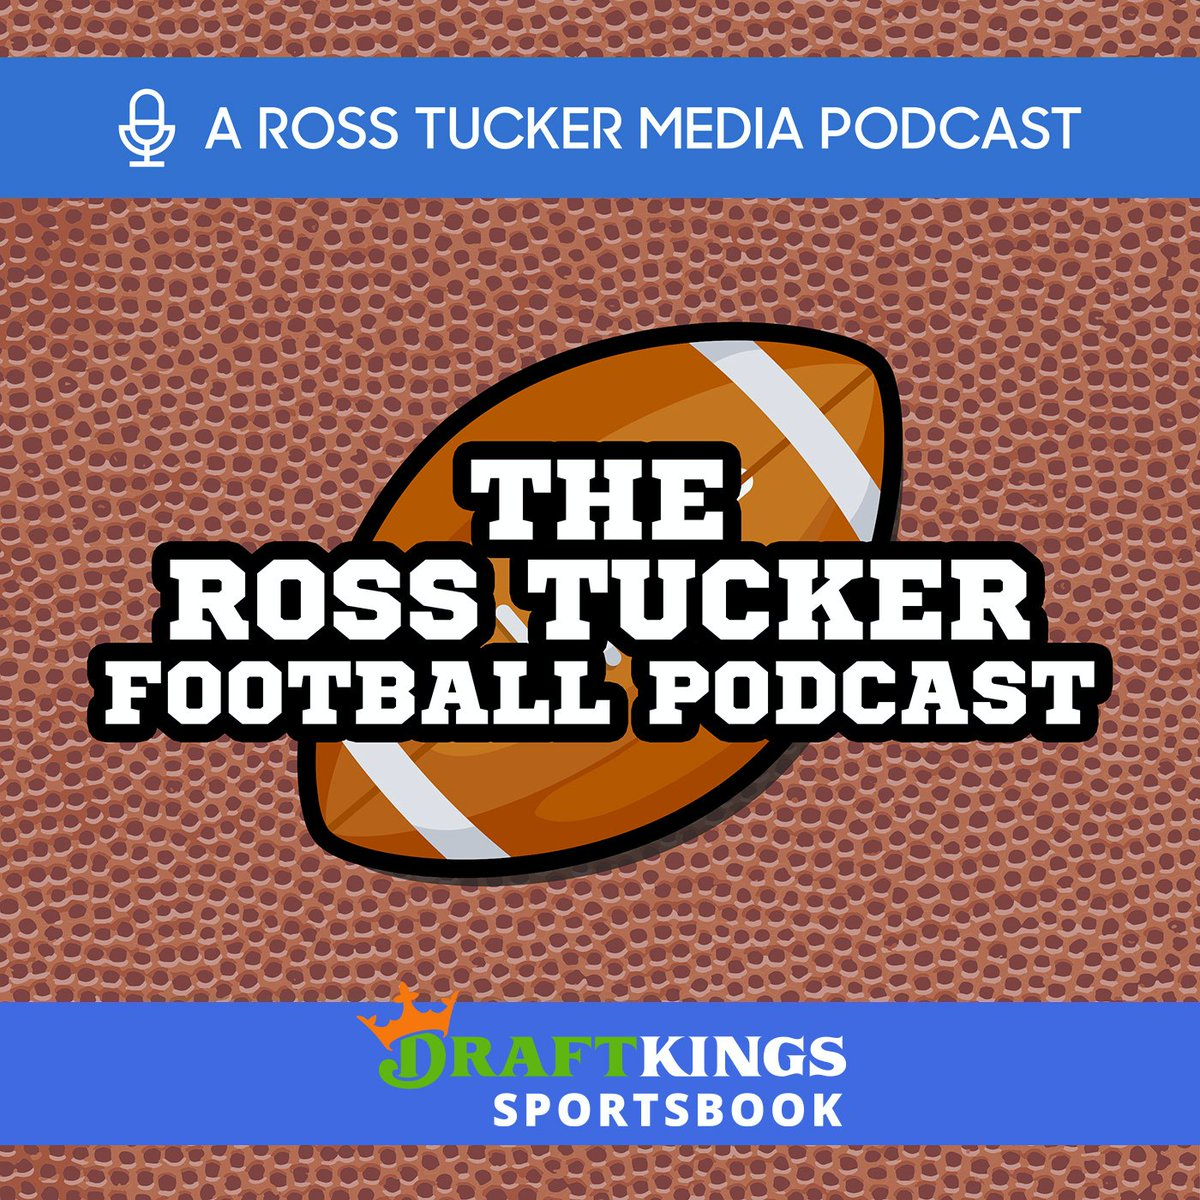 MMQB NFL reporter @AlbertBreer joins @RossTuckerNFL on todays pod talking about: - Networking at the Senior Bowl. - The importance of this years Senior Bowl with no combine. - 2021 QB changes. - Houston Texans dysfunction. linktr.ee/RossTuckerPod